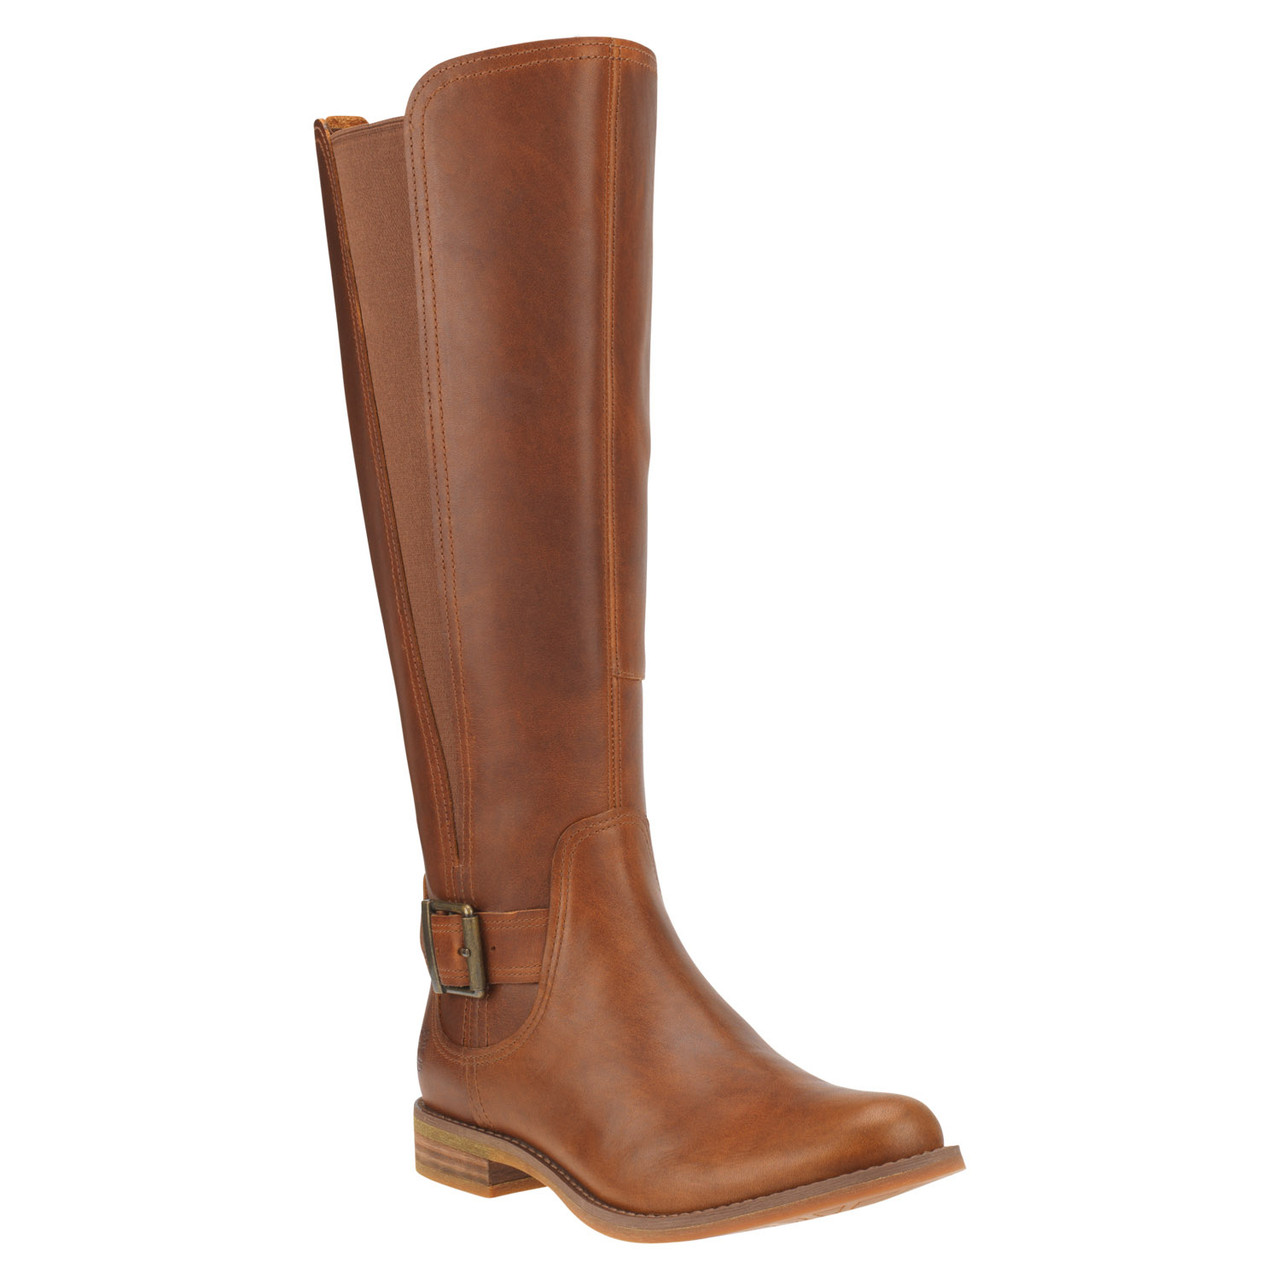 new styles c65e8 75806 Women s Timberland Savin Hill All Fit Tall Boot - Sieverts Sporting Goods